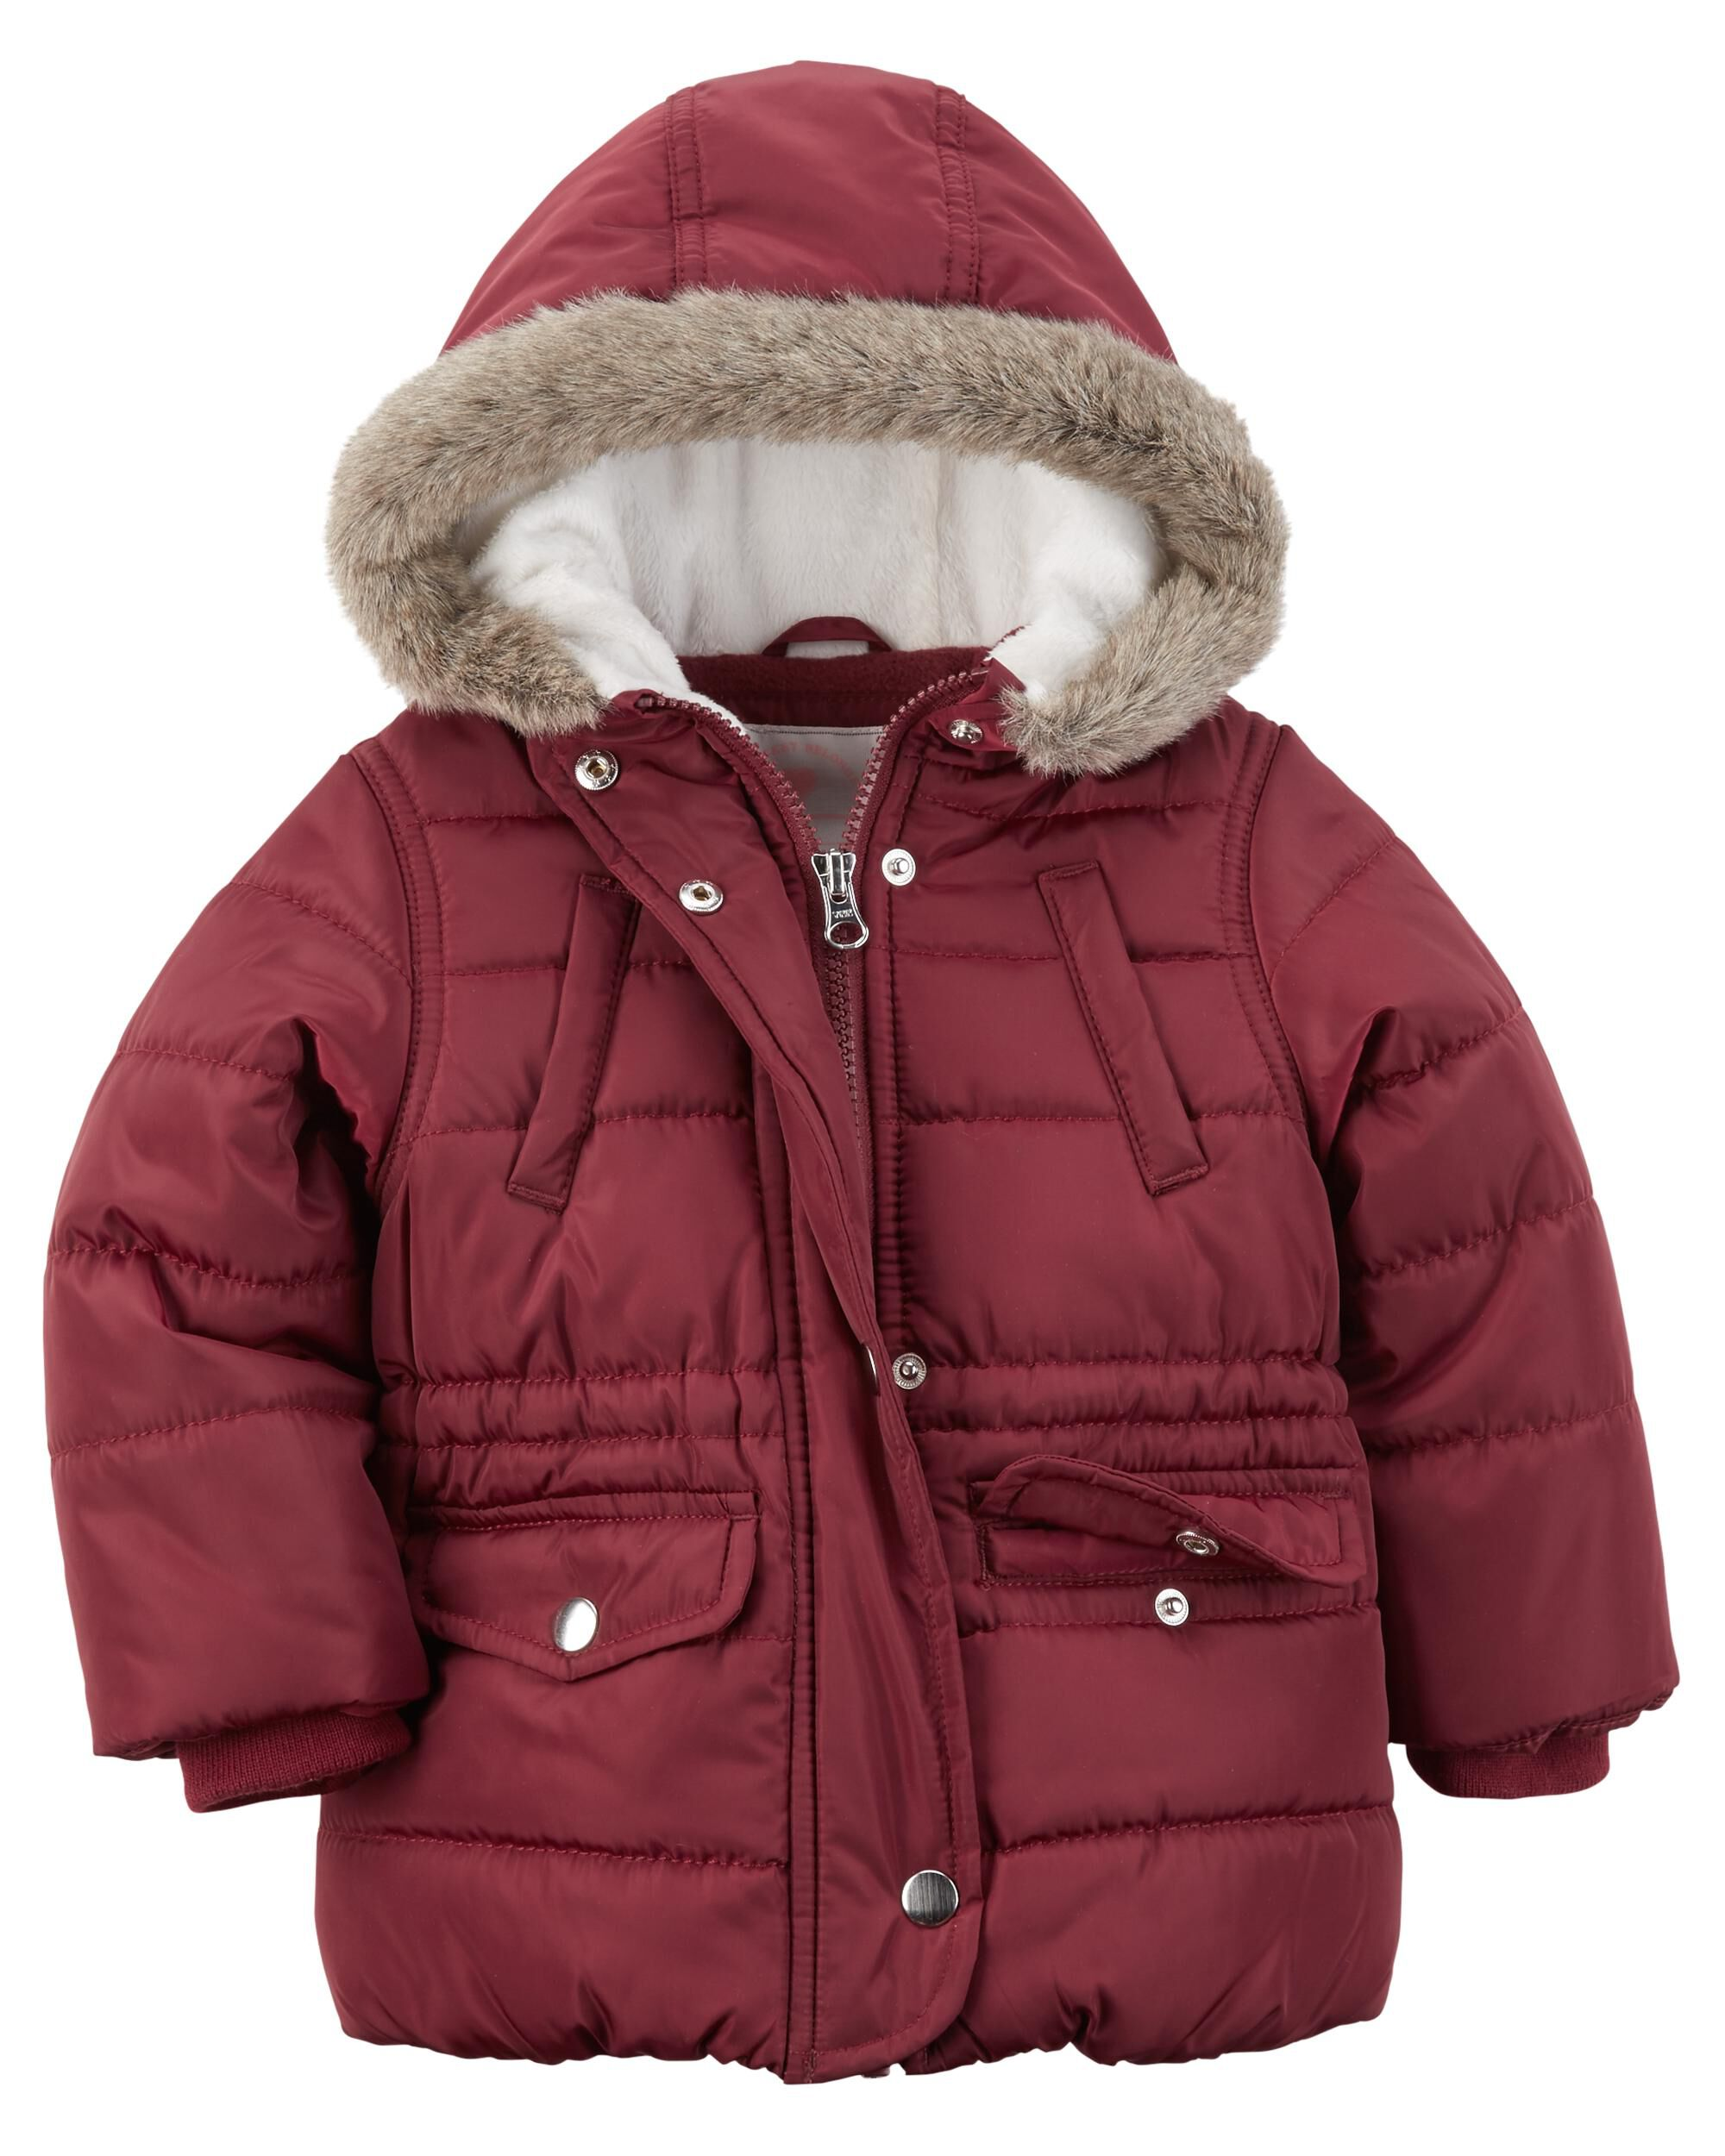 Shop newborn baby girl jackets, snowsuits & so much more at The Children's Place. Shop the PLACE where big fashion meets little prices!